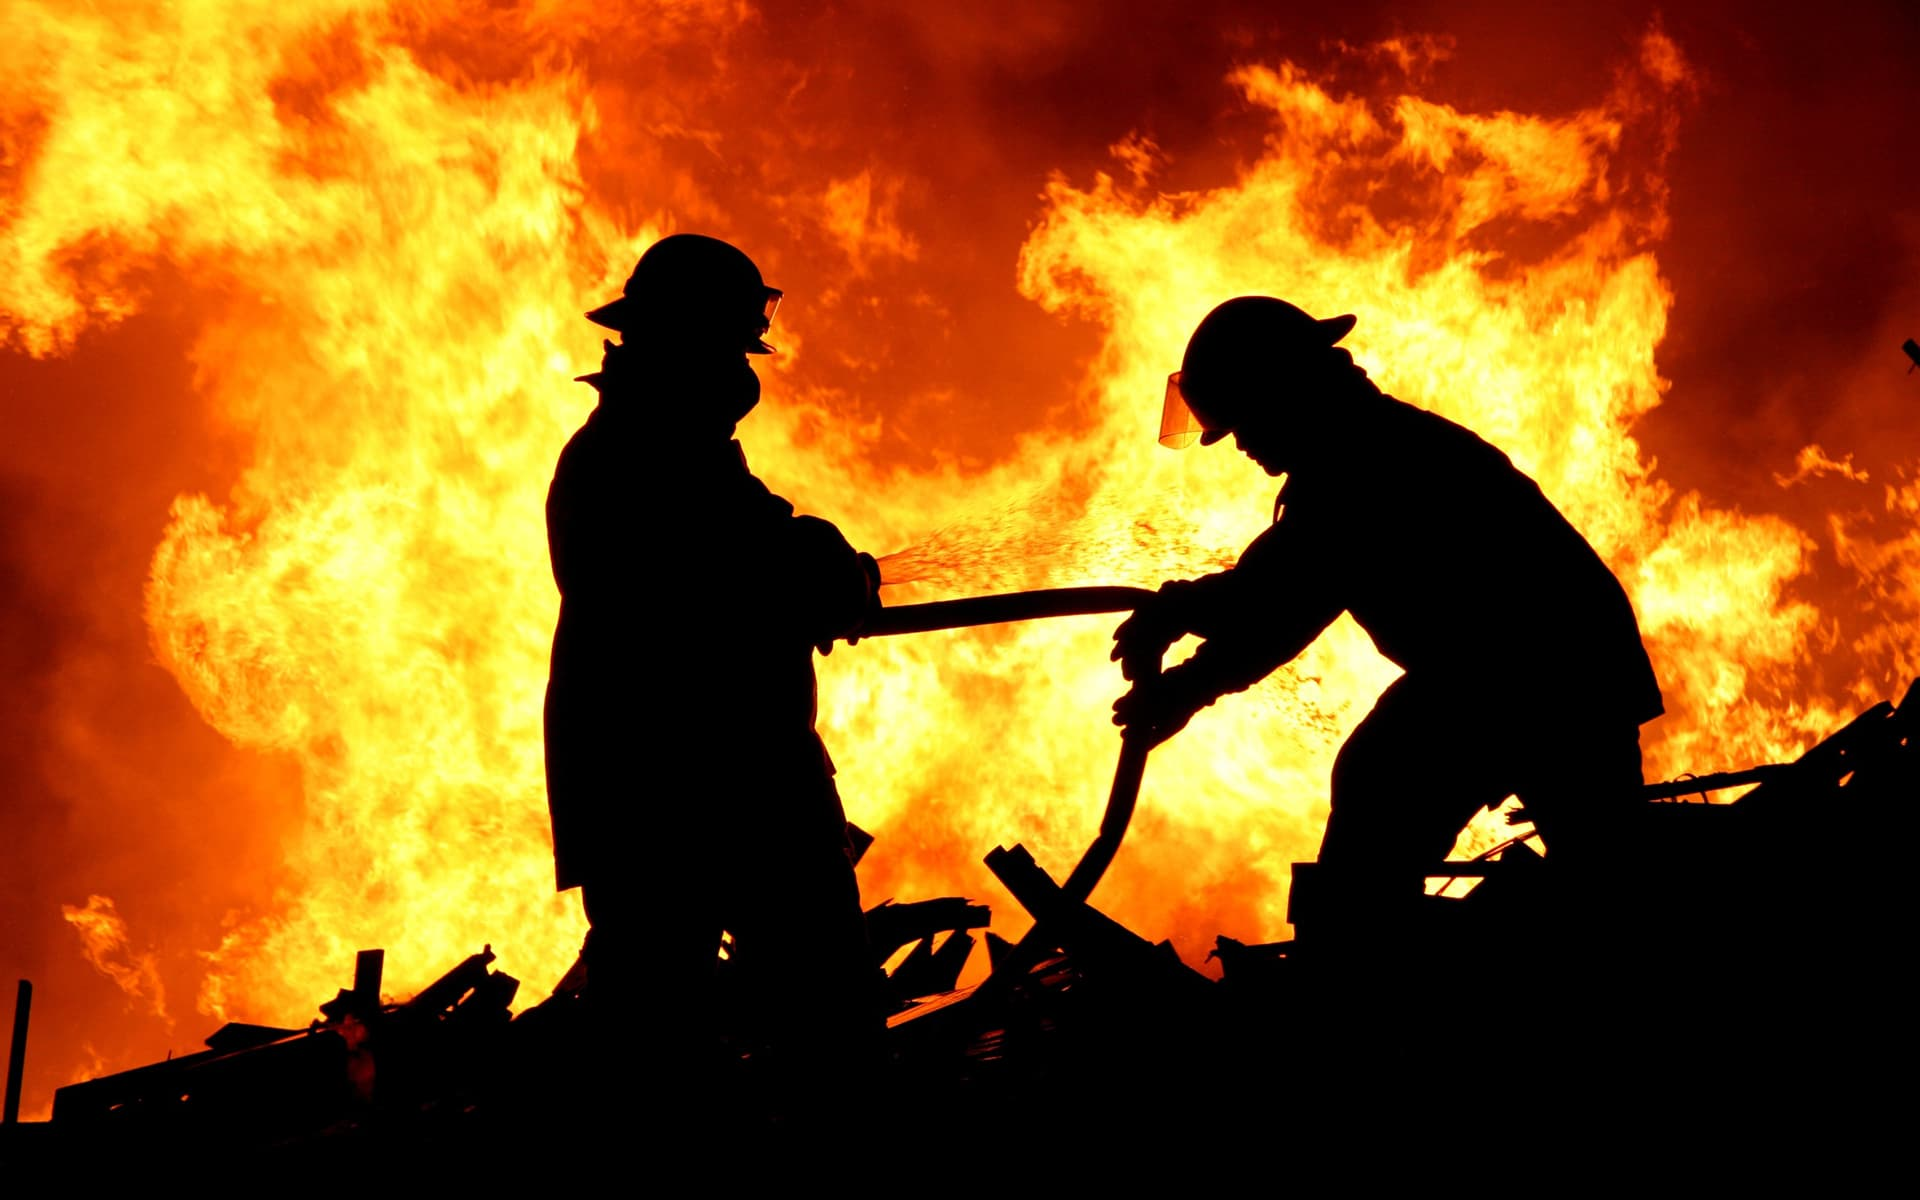 Flame sensor technology with pyroelectric detectors - Picture Credits: © Duncan Noakes / Fotolia.com